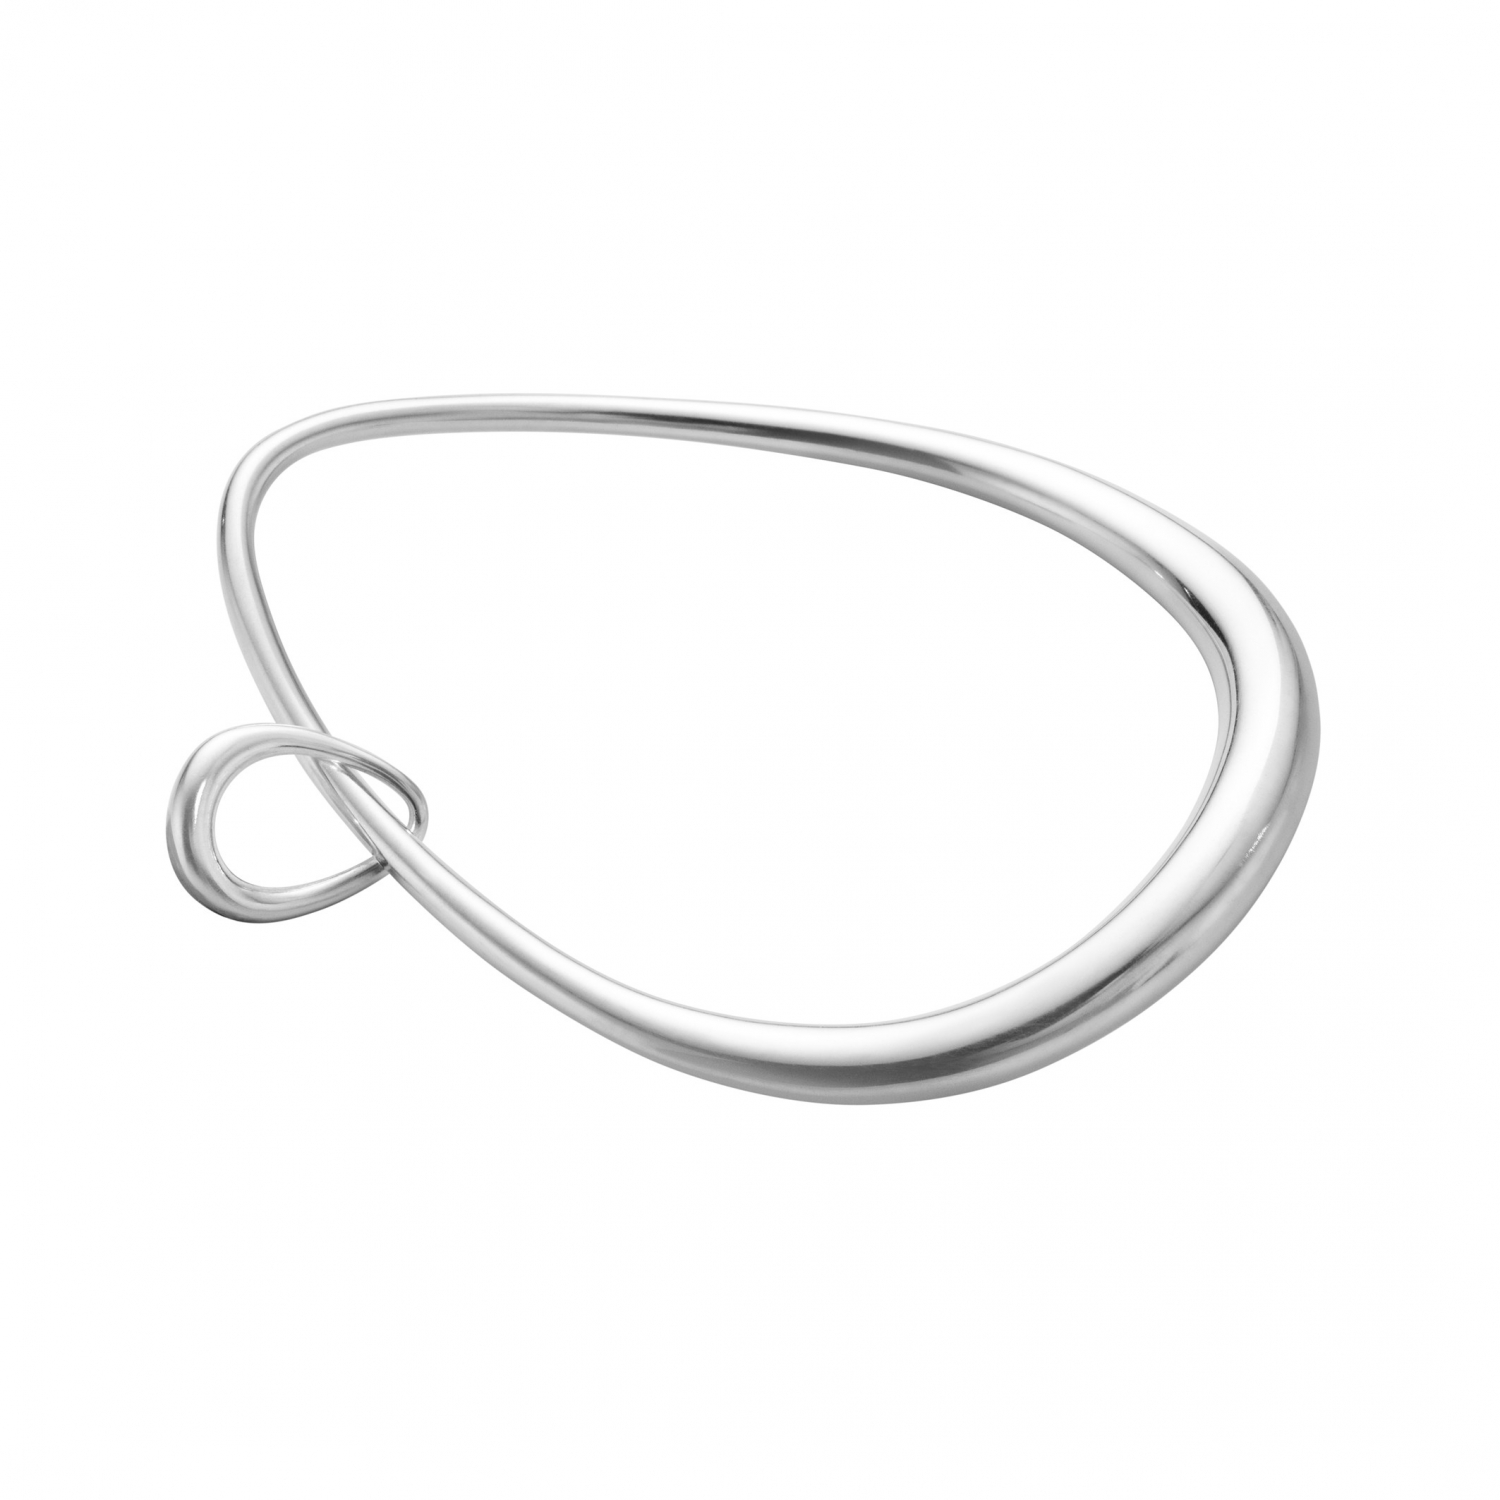 Image of   Georg Jensen OFFSPRING armring - 10013289 Armring størrelse M